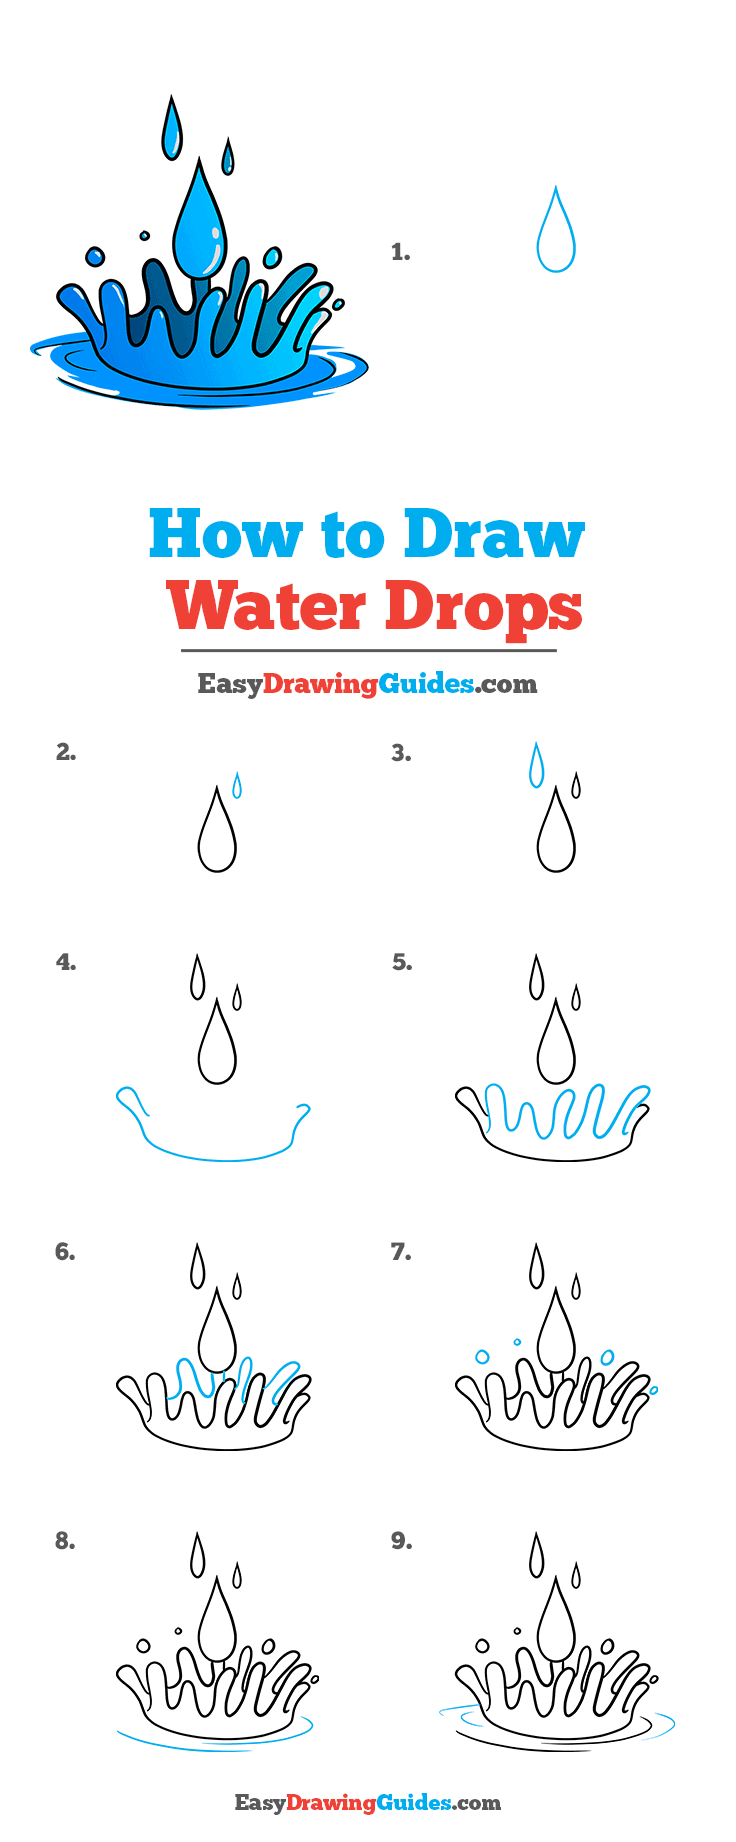 How to Draw Water Drops Step by Step Tutorial Image